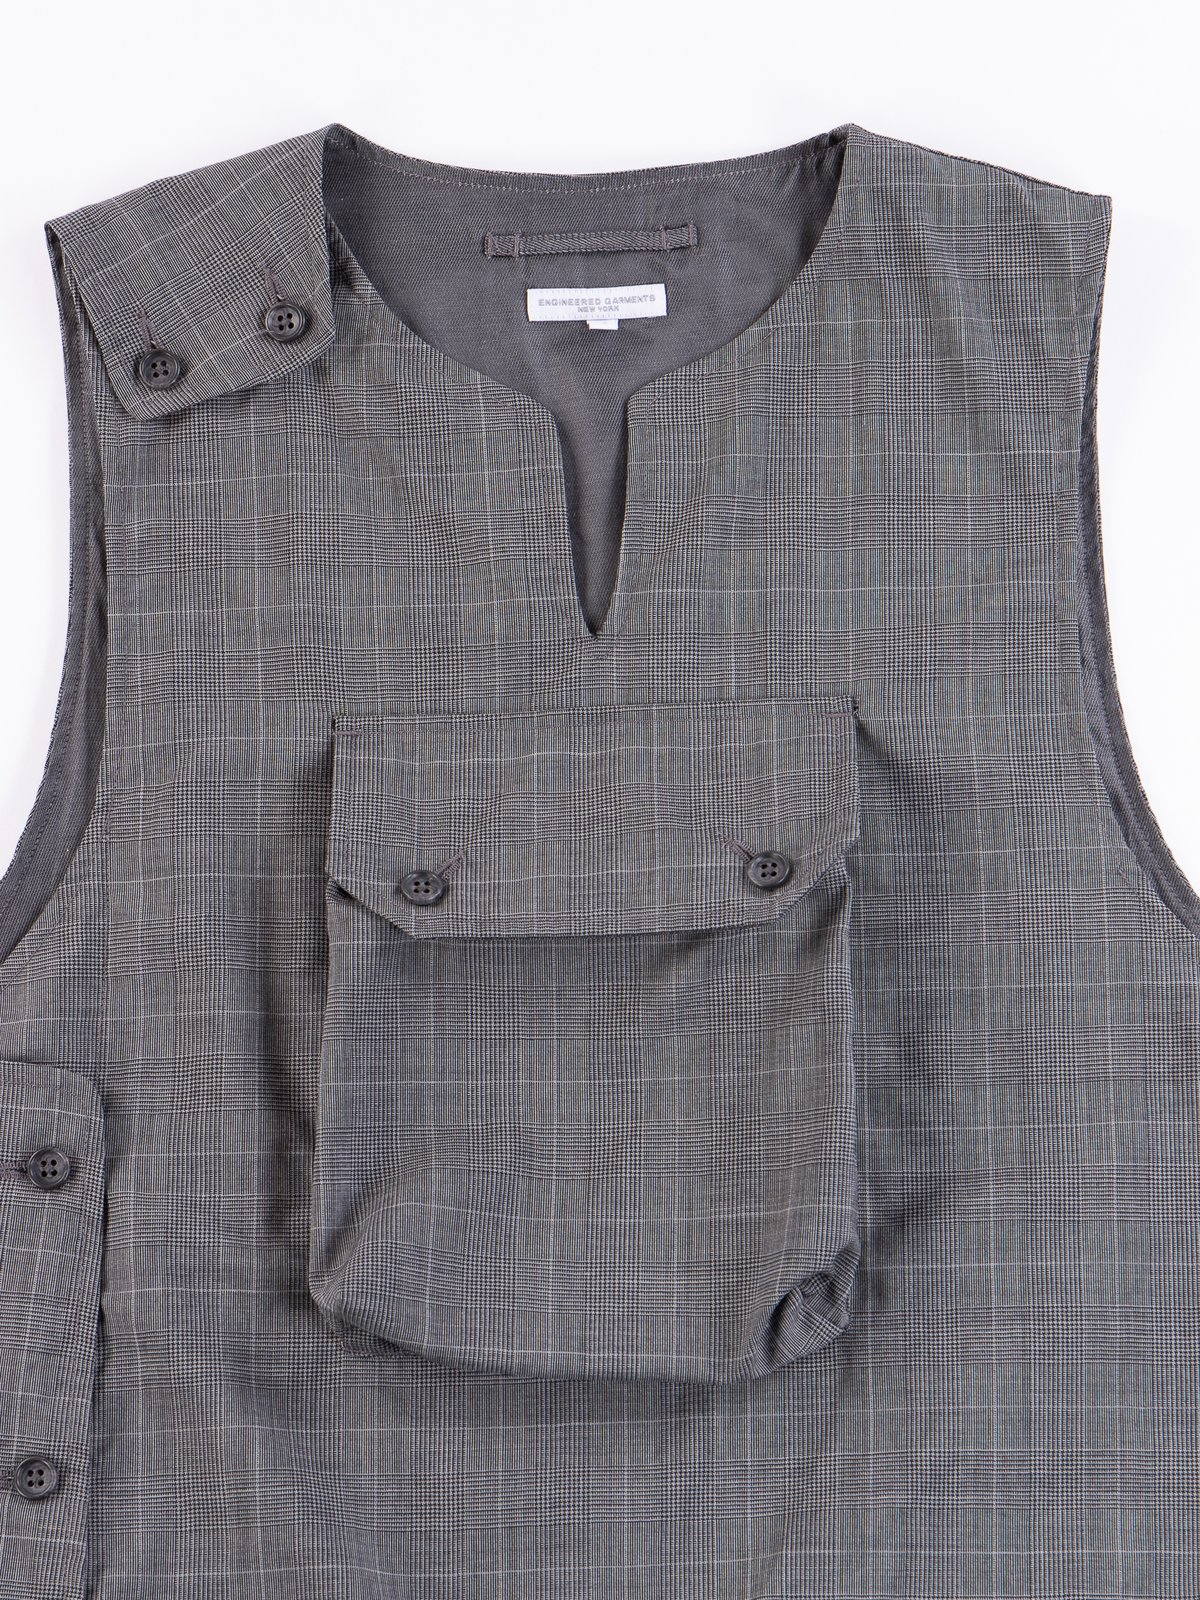 Grey Glen Plaid Tropical Wool Cover Vest - Image 3